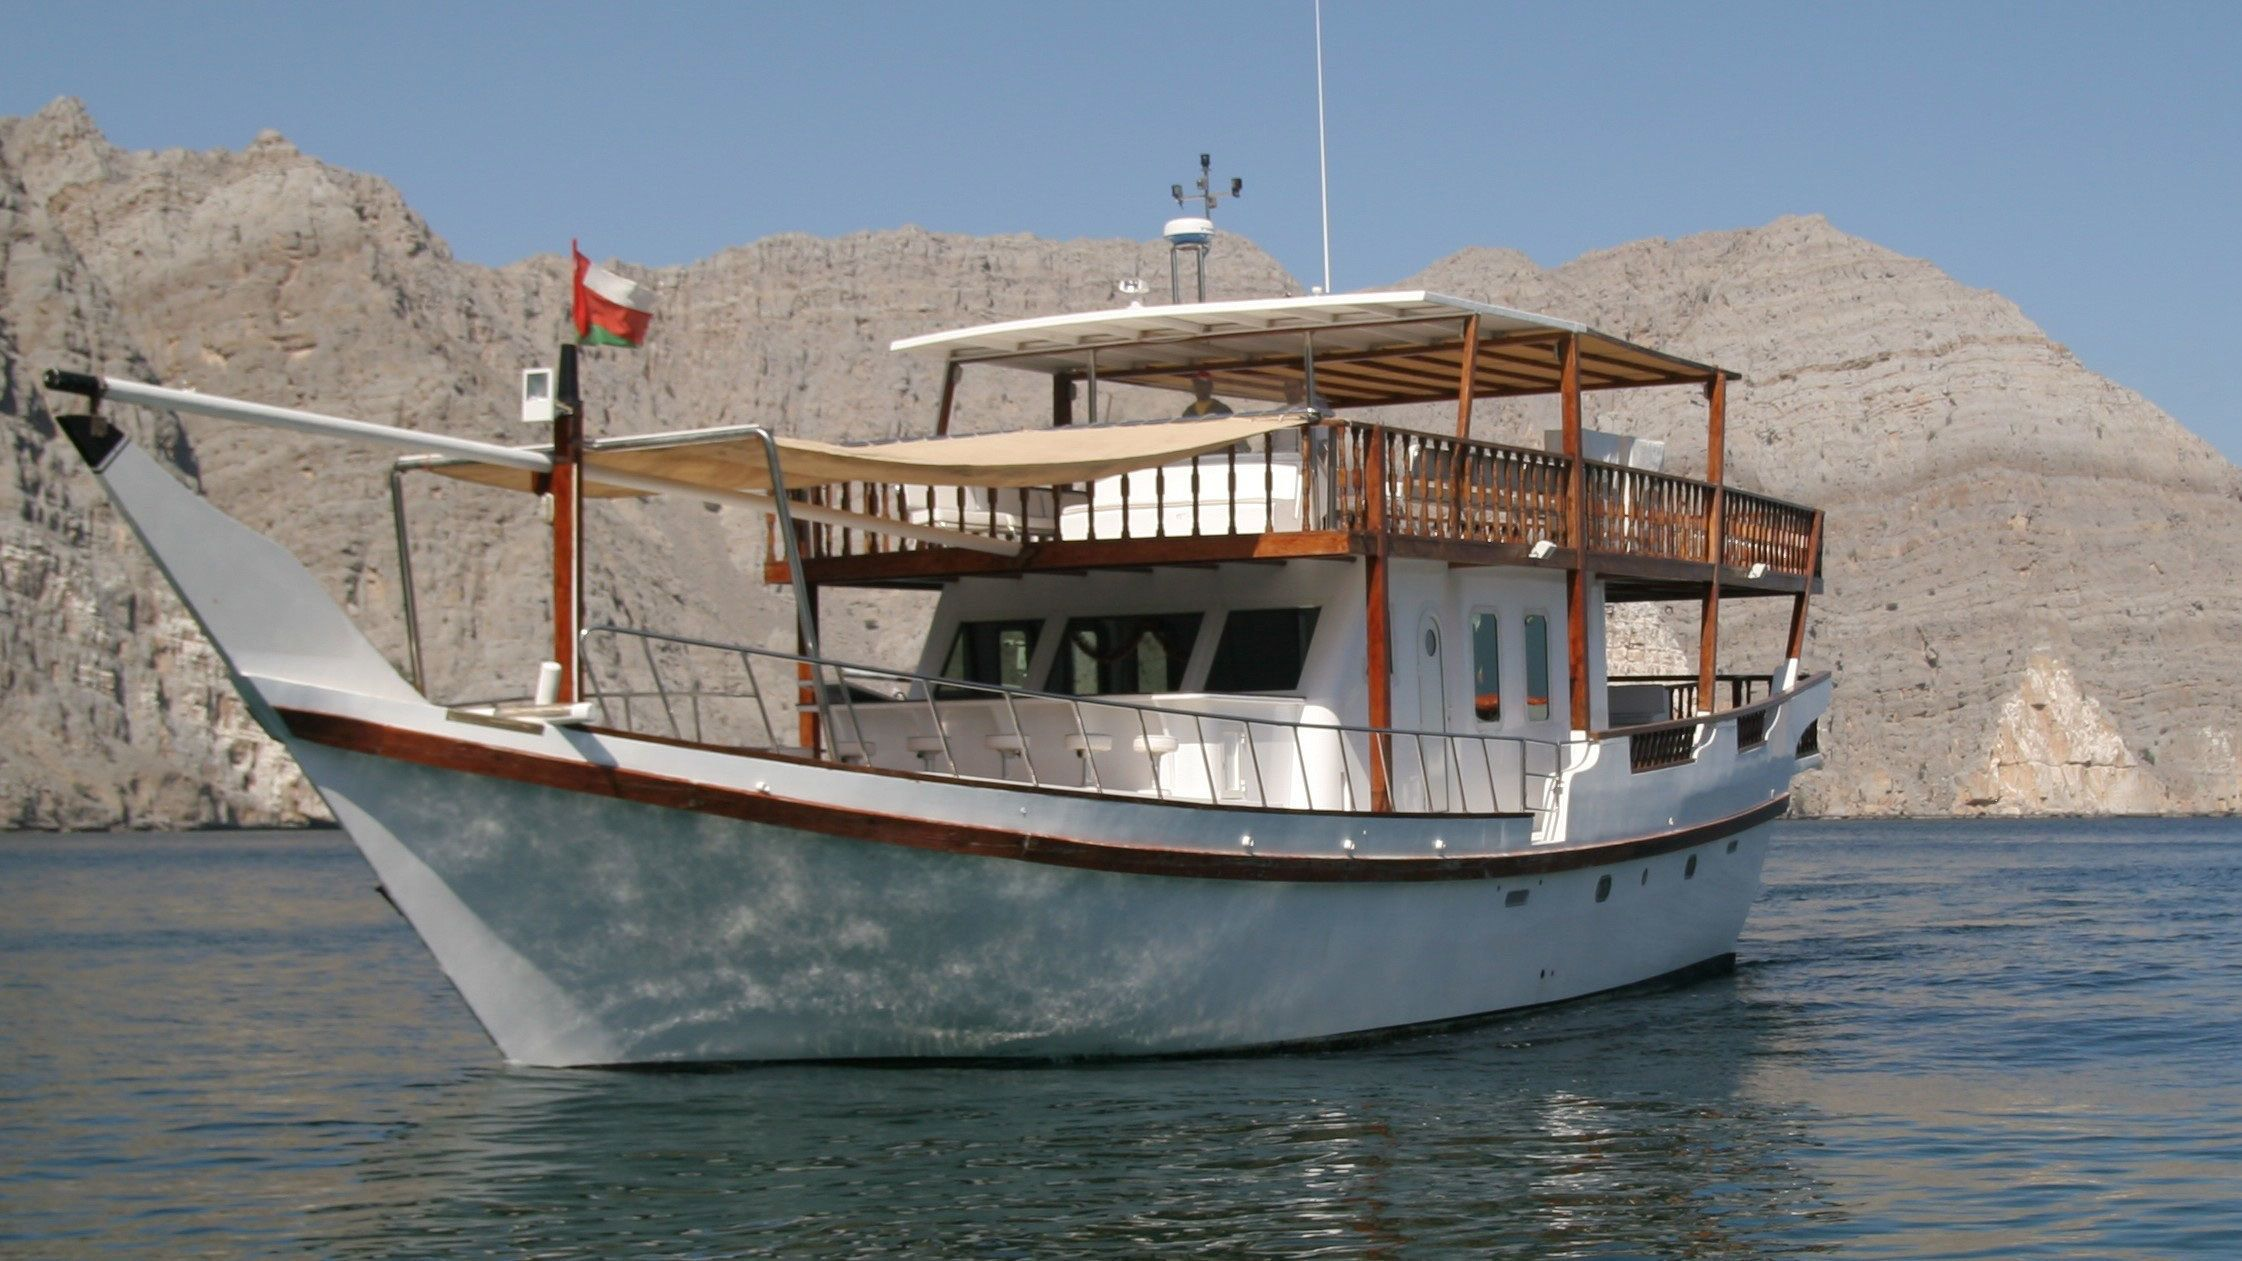 Musandam Omani Full-Day Dhow Boat Cruise from Khasab with Lunch